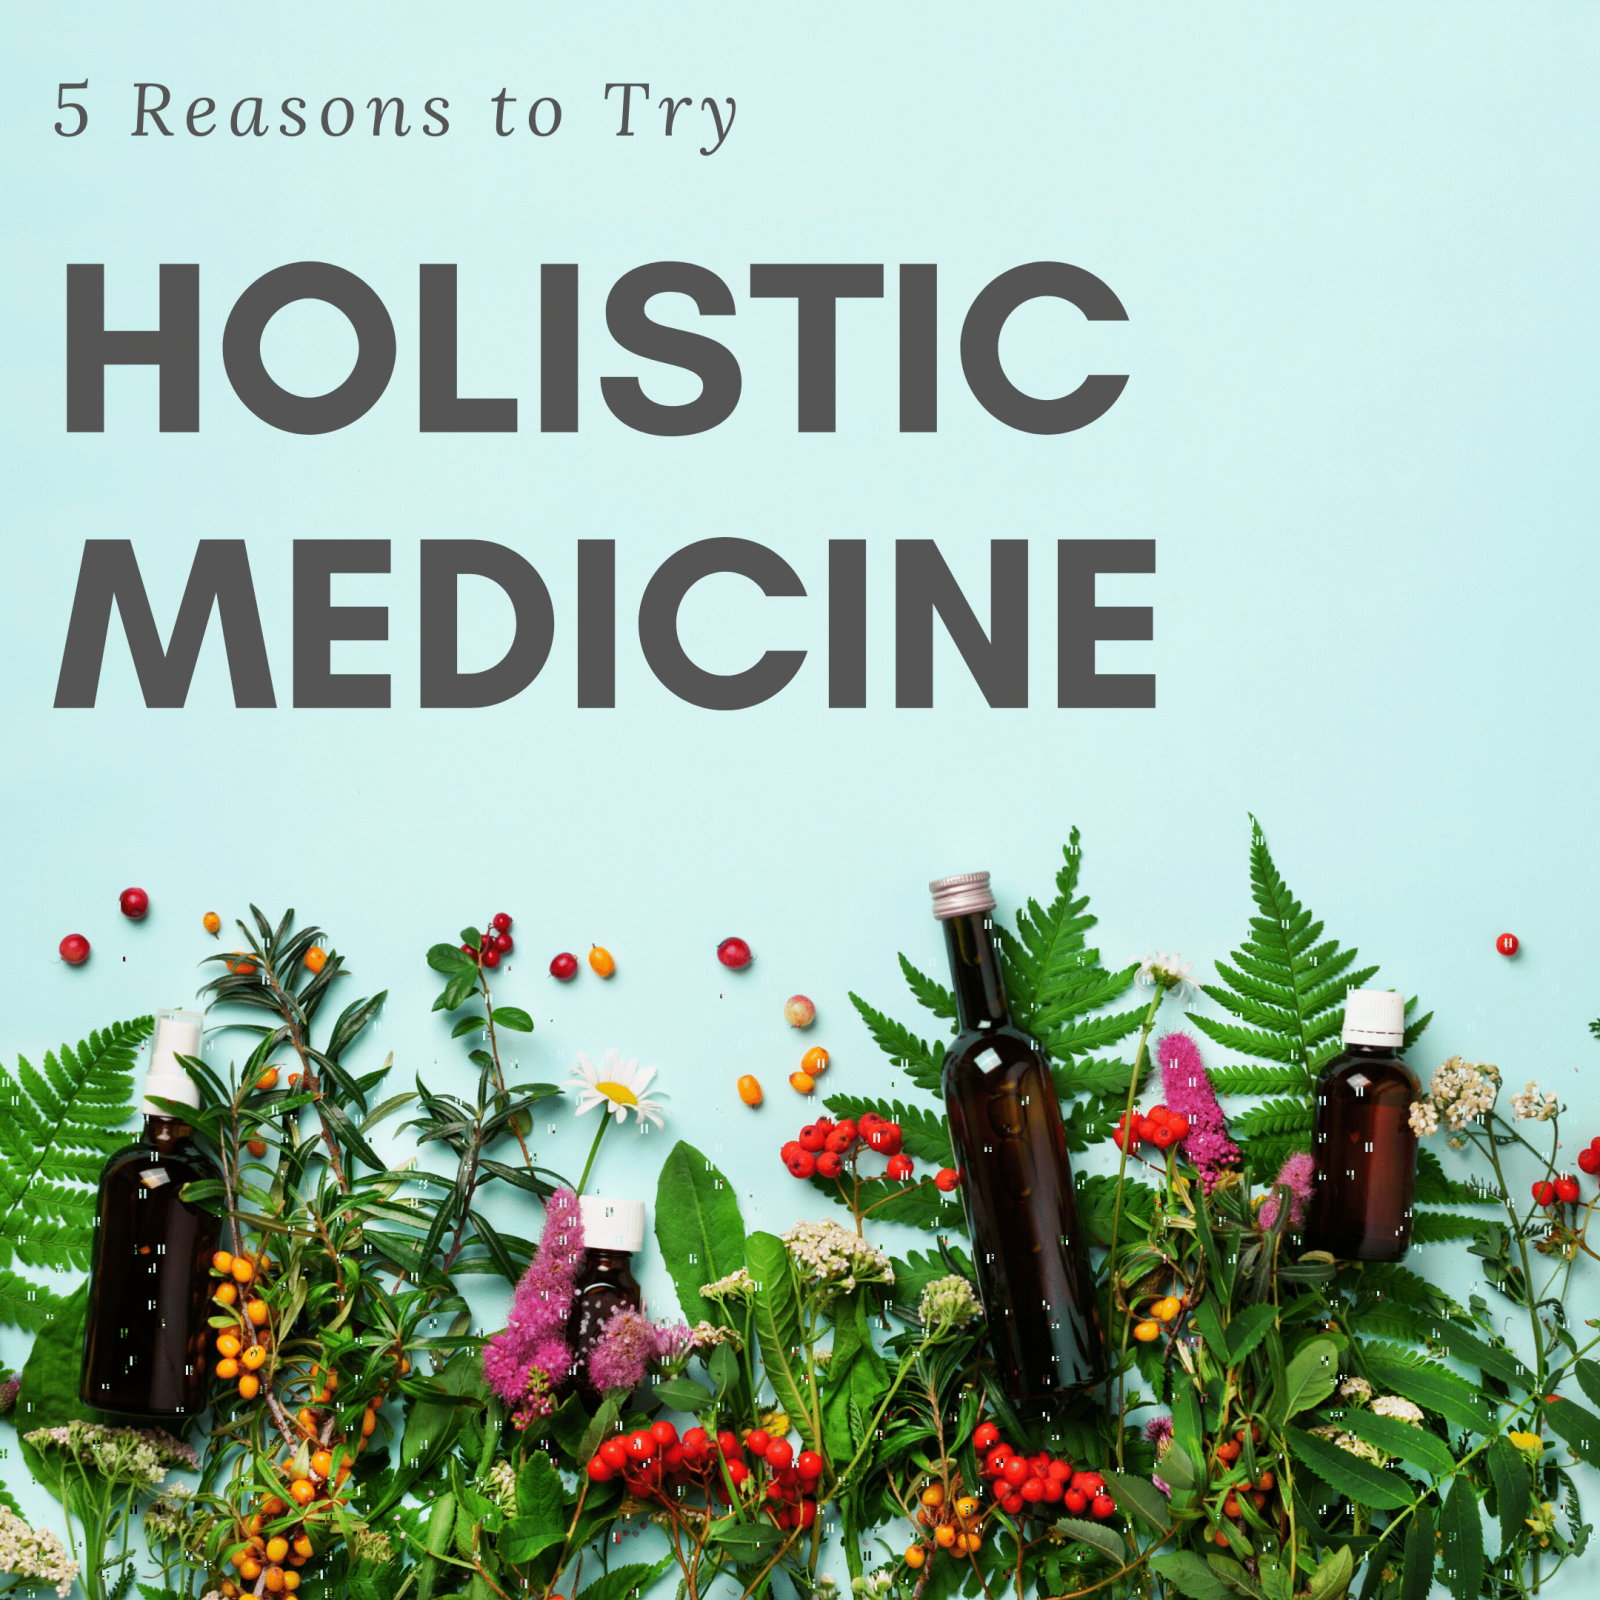 5 Reasons to Try Holistic Medicine